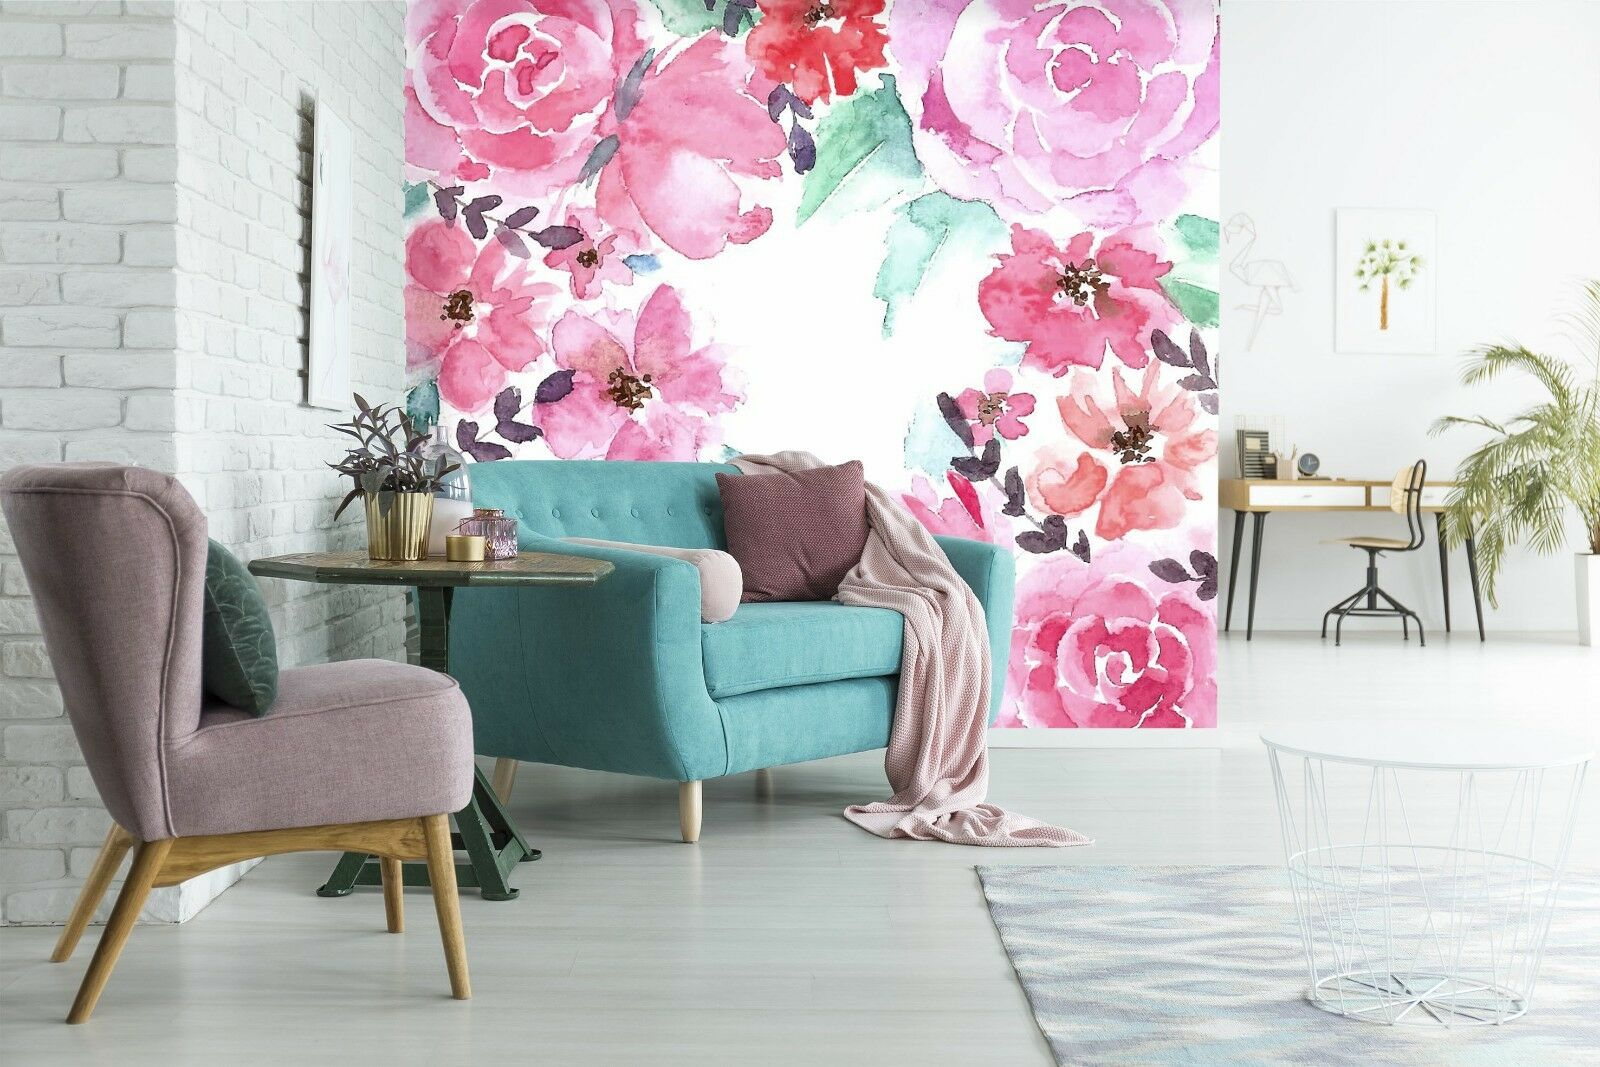 3D ROT Flower  781 Wall Paper Print Wall Decal Deco Indoor Wall Murals US Summer